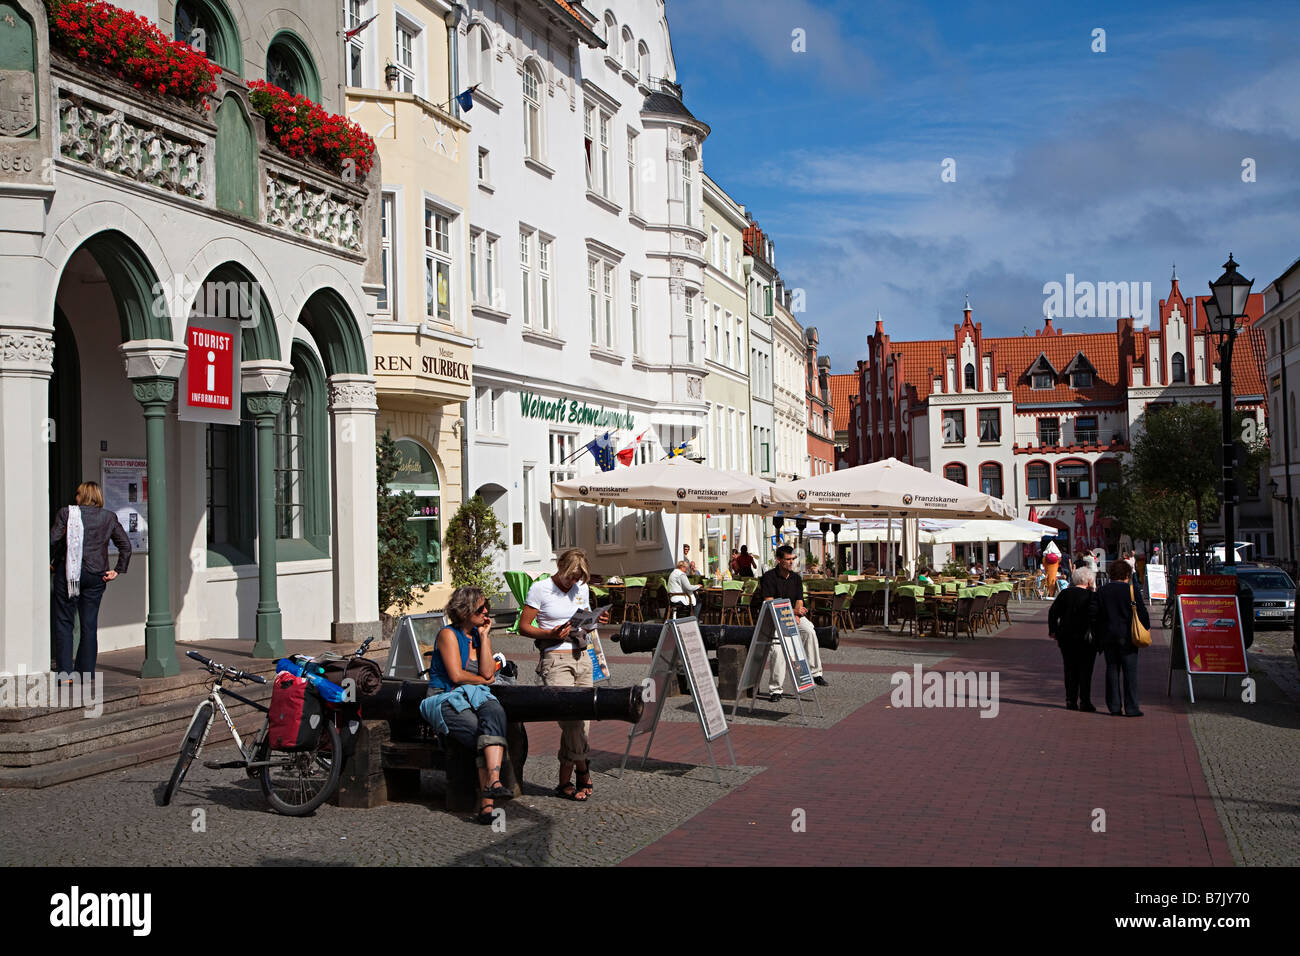 People outside tourist information office Wismar Germany - Stock Image